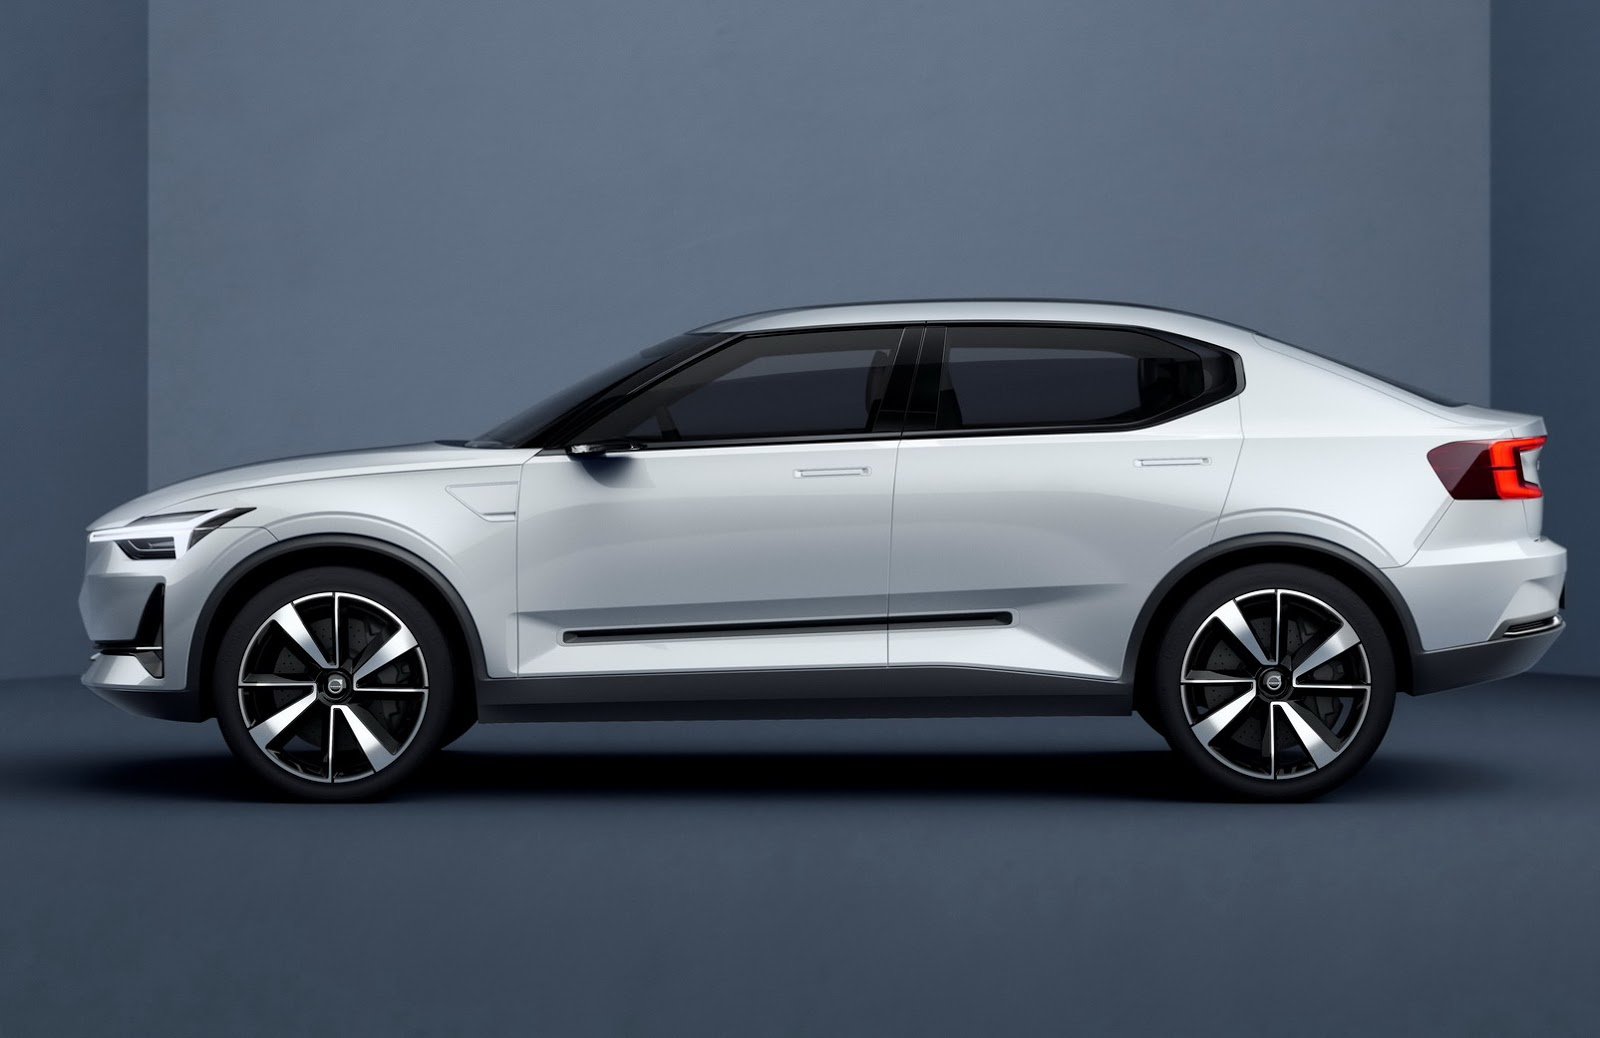 vwvortex - volvo 40.1 and 40.2 concepts revealed - previews